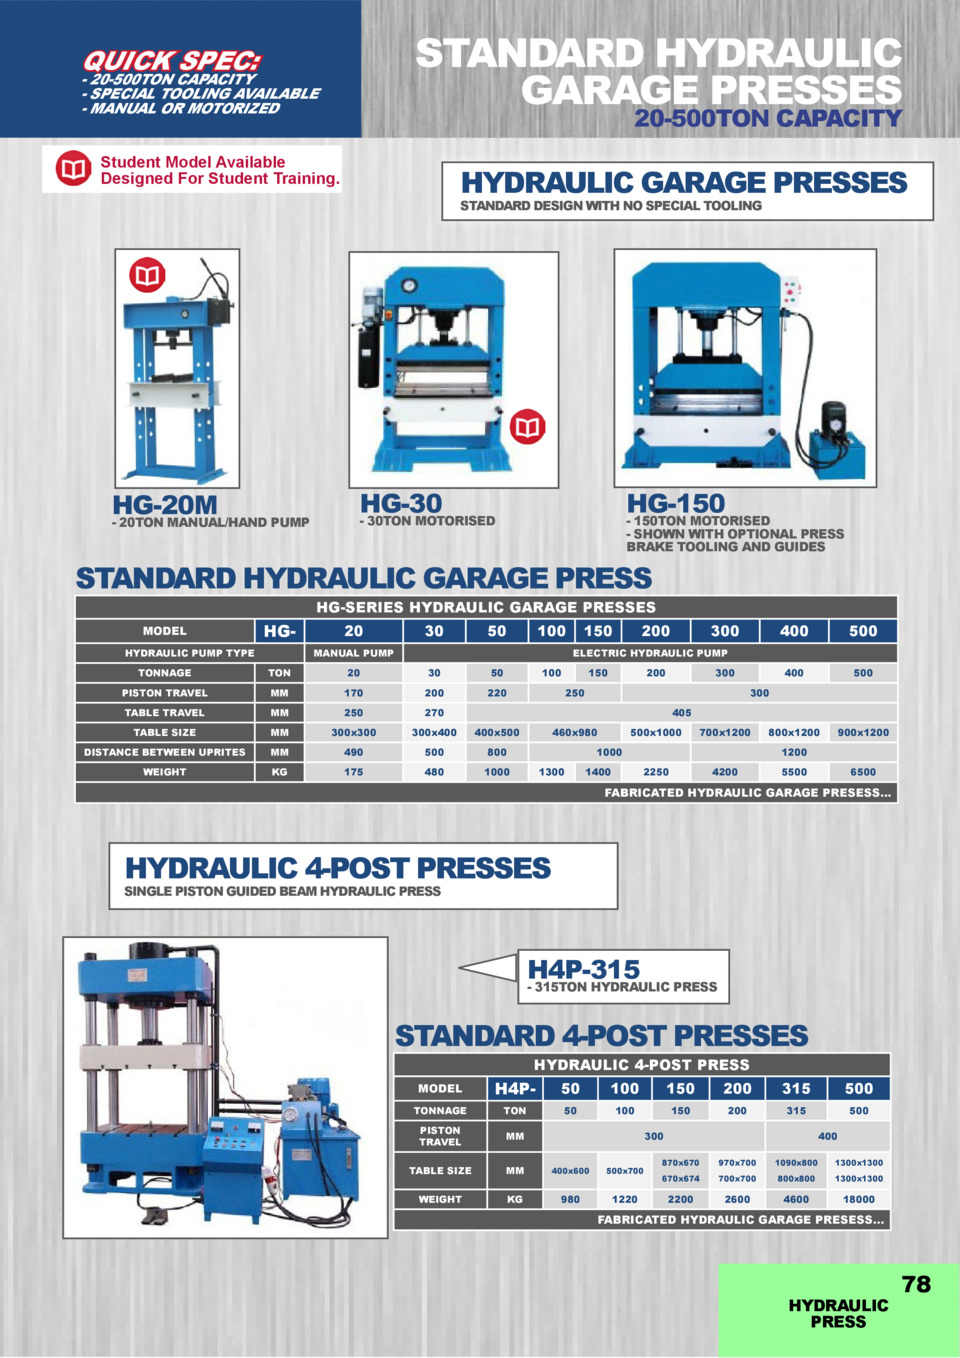 STANDARD HYDRAULIC GARAGE PRESSES  QUICK SPEC   - 20-500TON CAPACITY - SPECIAL TOOLING AVAILABLE - MANUAL OR MOTORIZED  20...